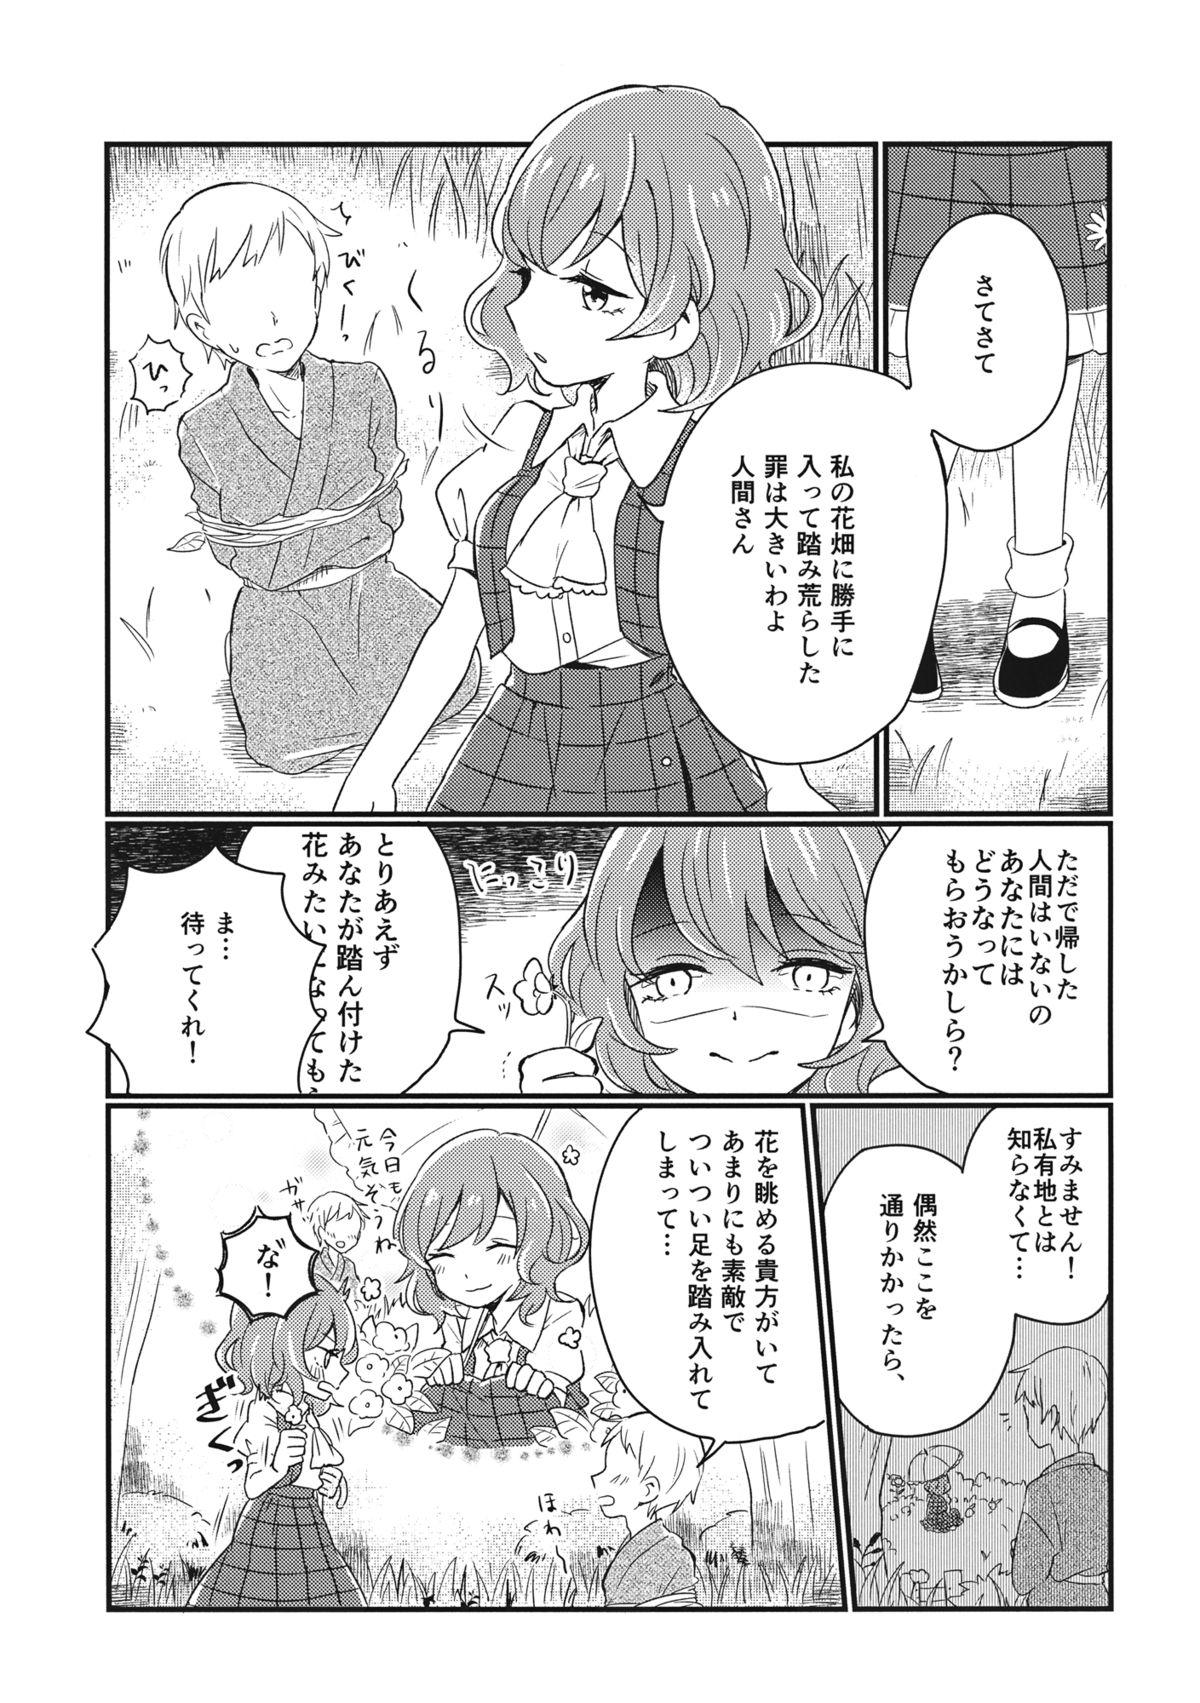 Touhou Muchi Shichu Goudou - Toho joint magazine sex in the ignorant situations 39